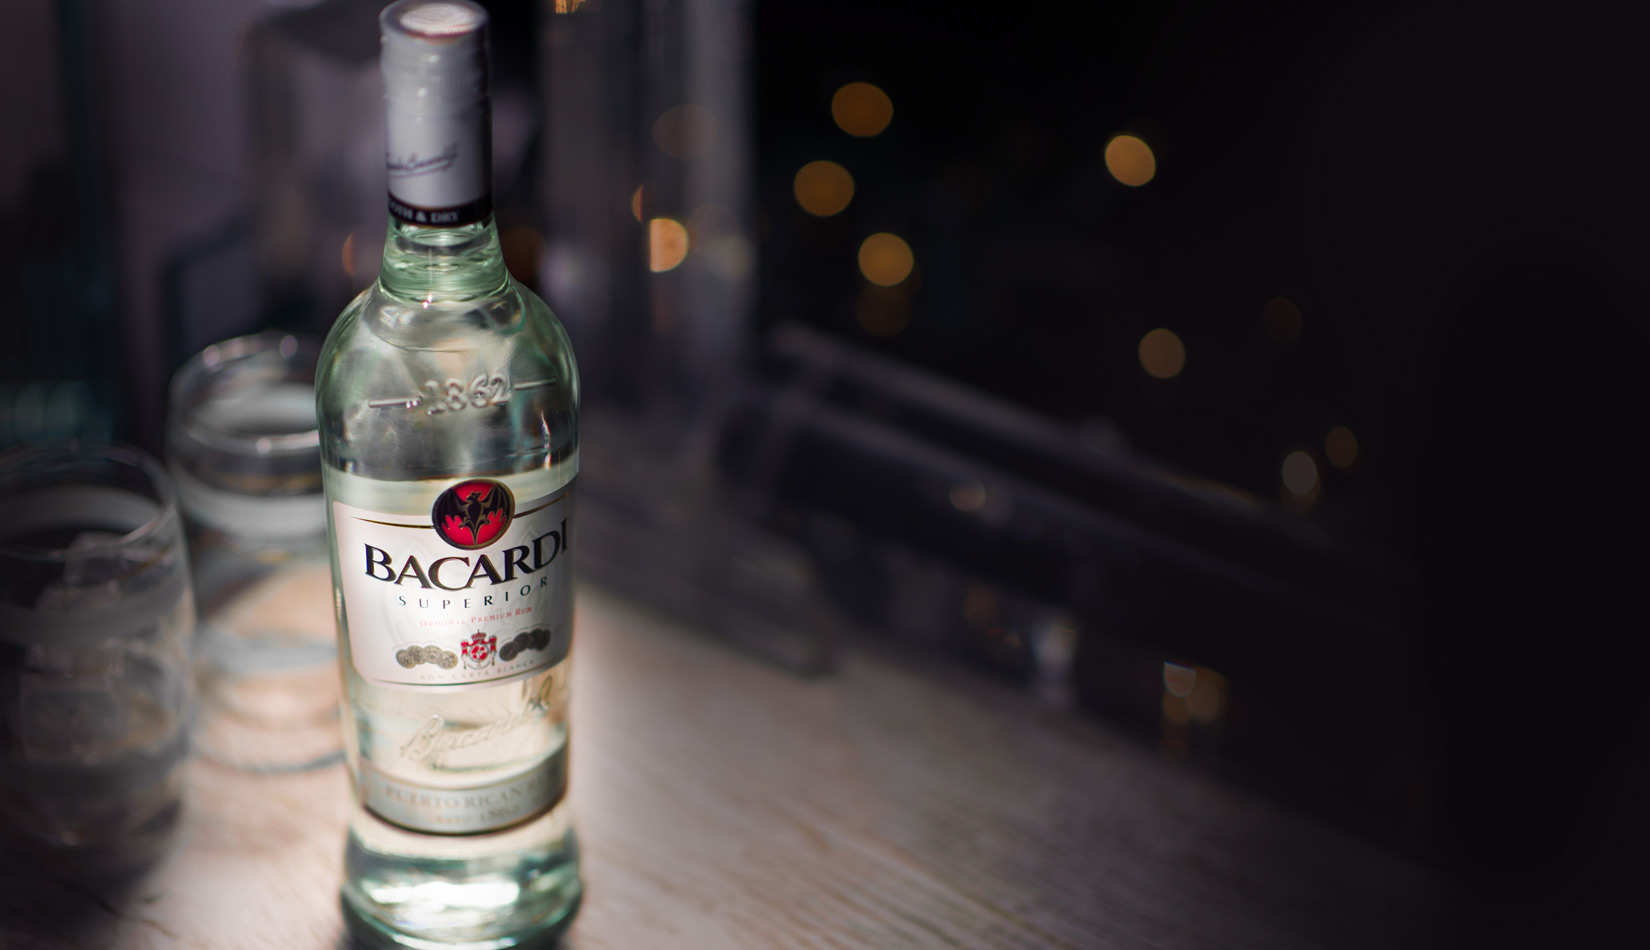 Bacardi High Quality Background on Wallpapers Vista